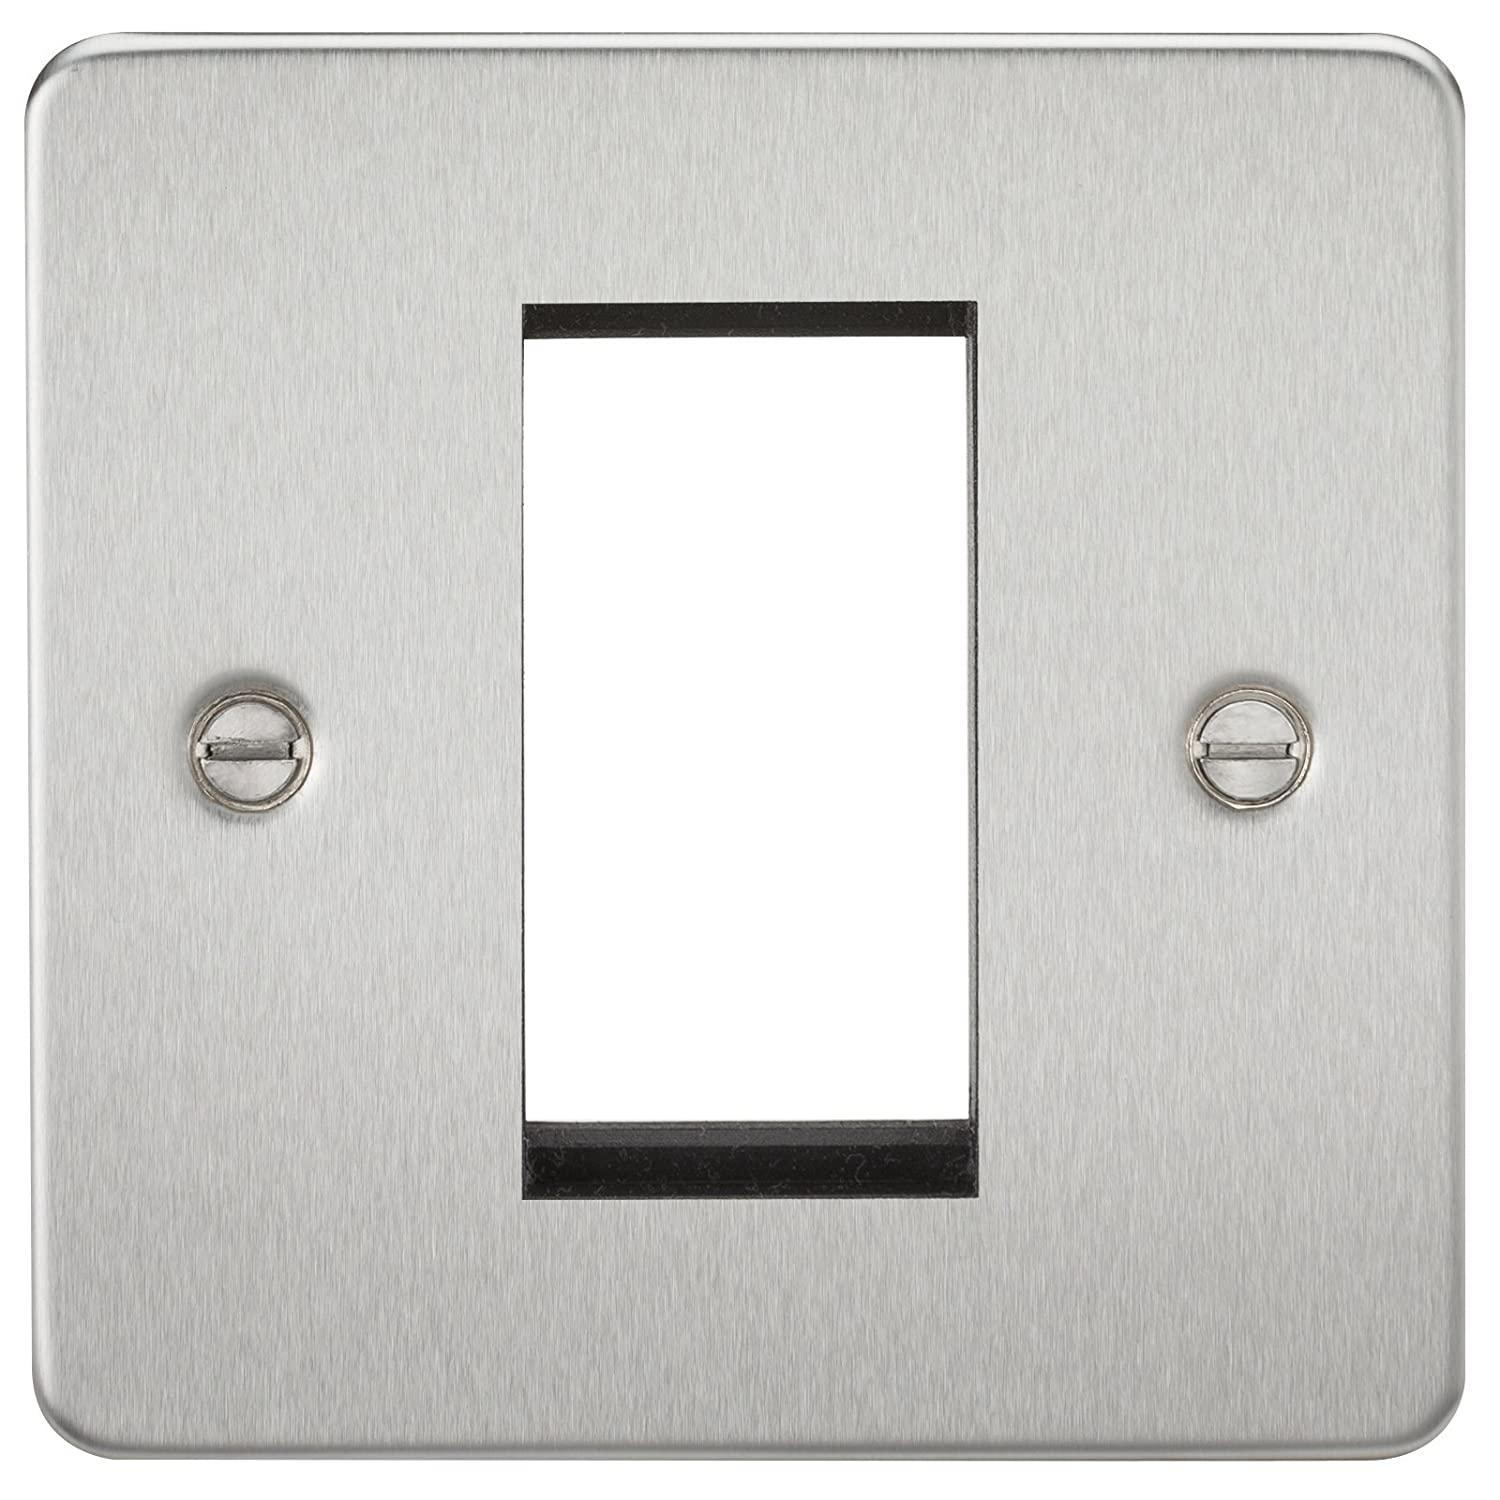 ML642 - BRUSHED CHROME FLAT PLATE 1G MODULAR FACEPLATE, 230V, IP20 W/ 15YR WARRANTY Knightsbridge